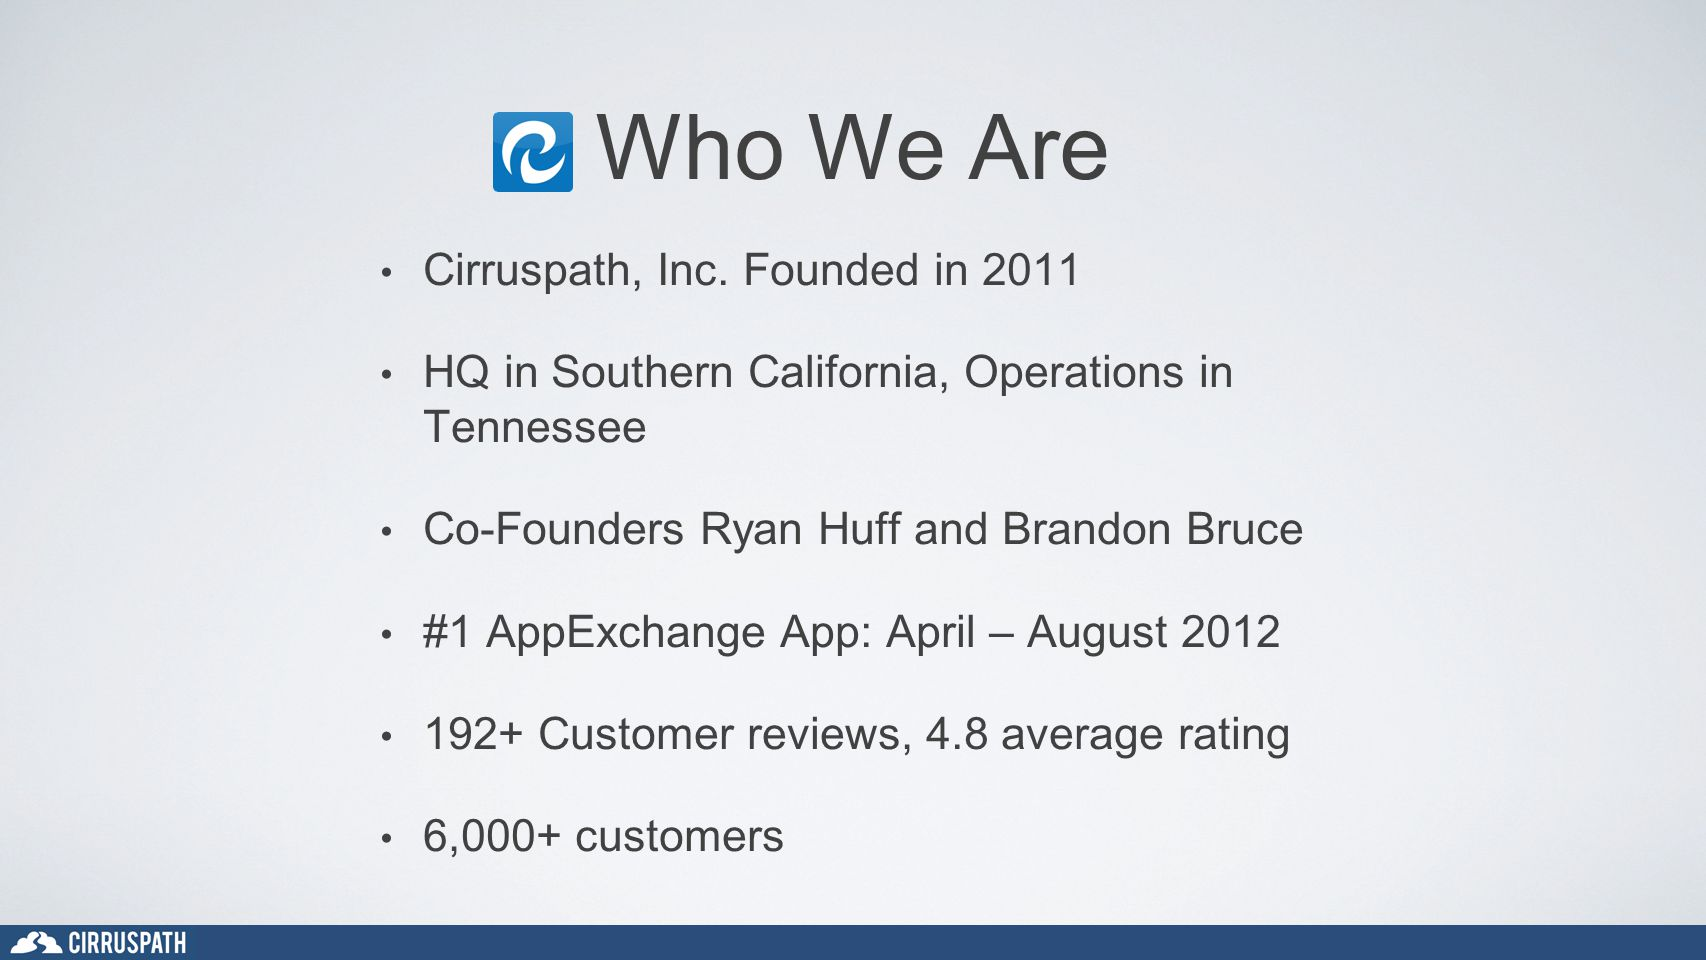 Who We Are Cirruspath, Inc. Founded in 2011 HQ in Southern California, Operations in Tennessee Co-Founders Ryan Huff and Brandon Bruce #1 AppExchange